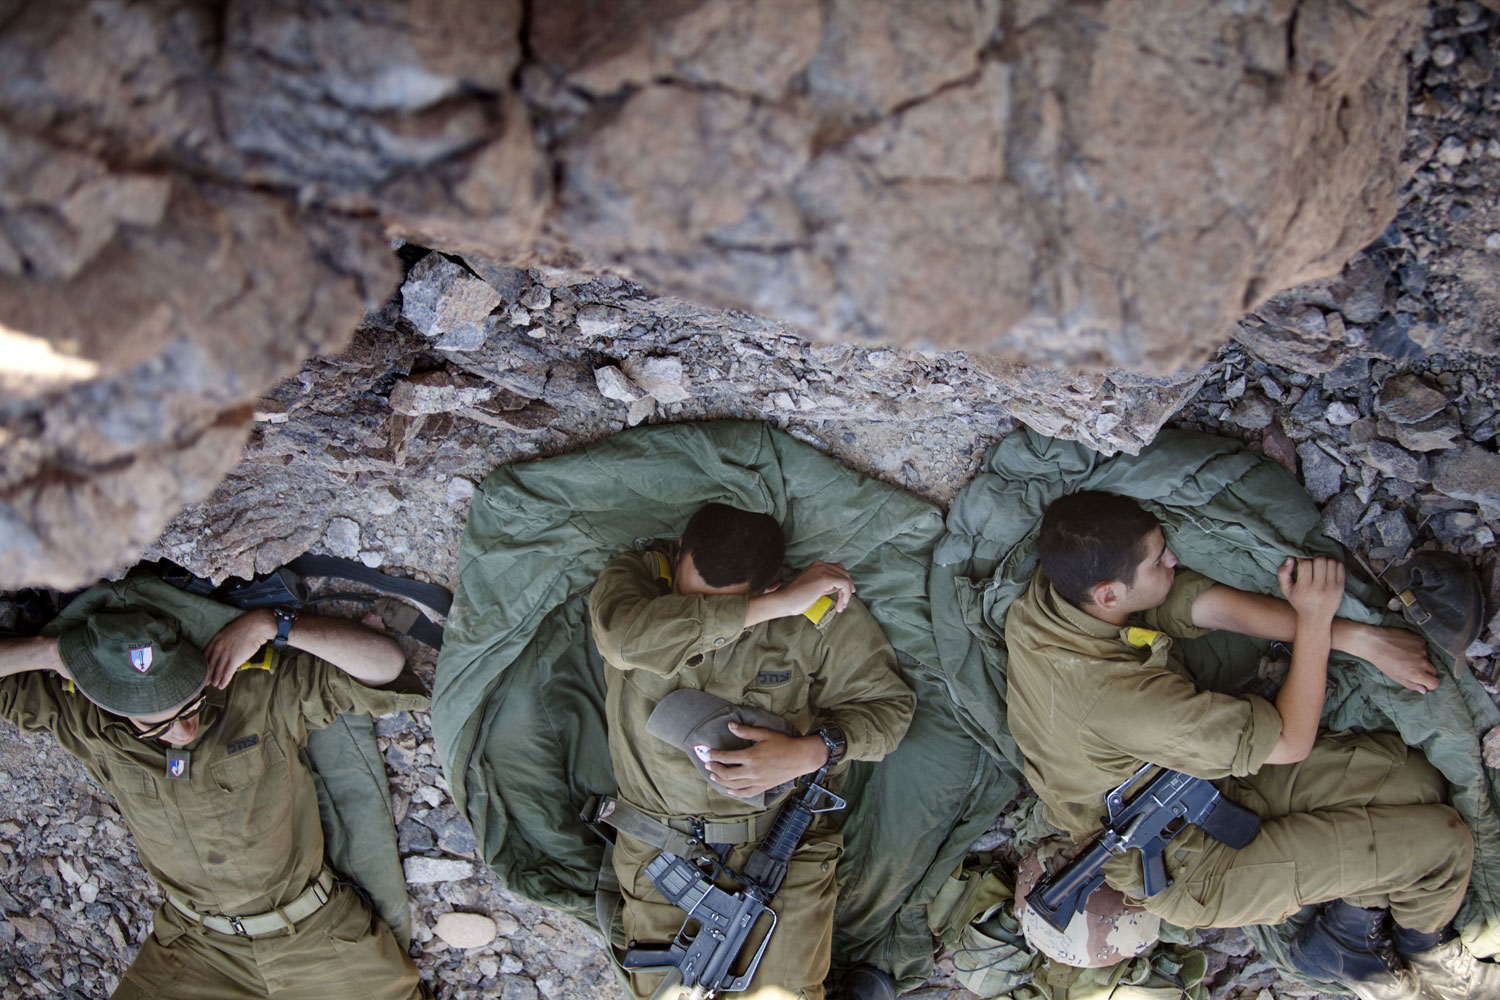 August 19, 2011. Israeli soldiers rest on the border between Israel and Egypt following a series of coordinated roadside attacks against military and civilian targets in Eilat, Israel. The militant group Hamas welcomed the attacks but did not claim responsibility.